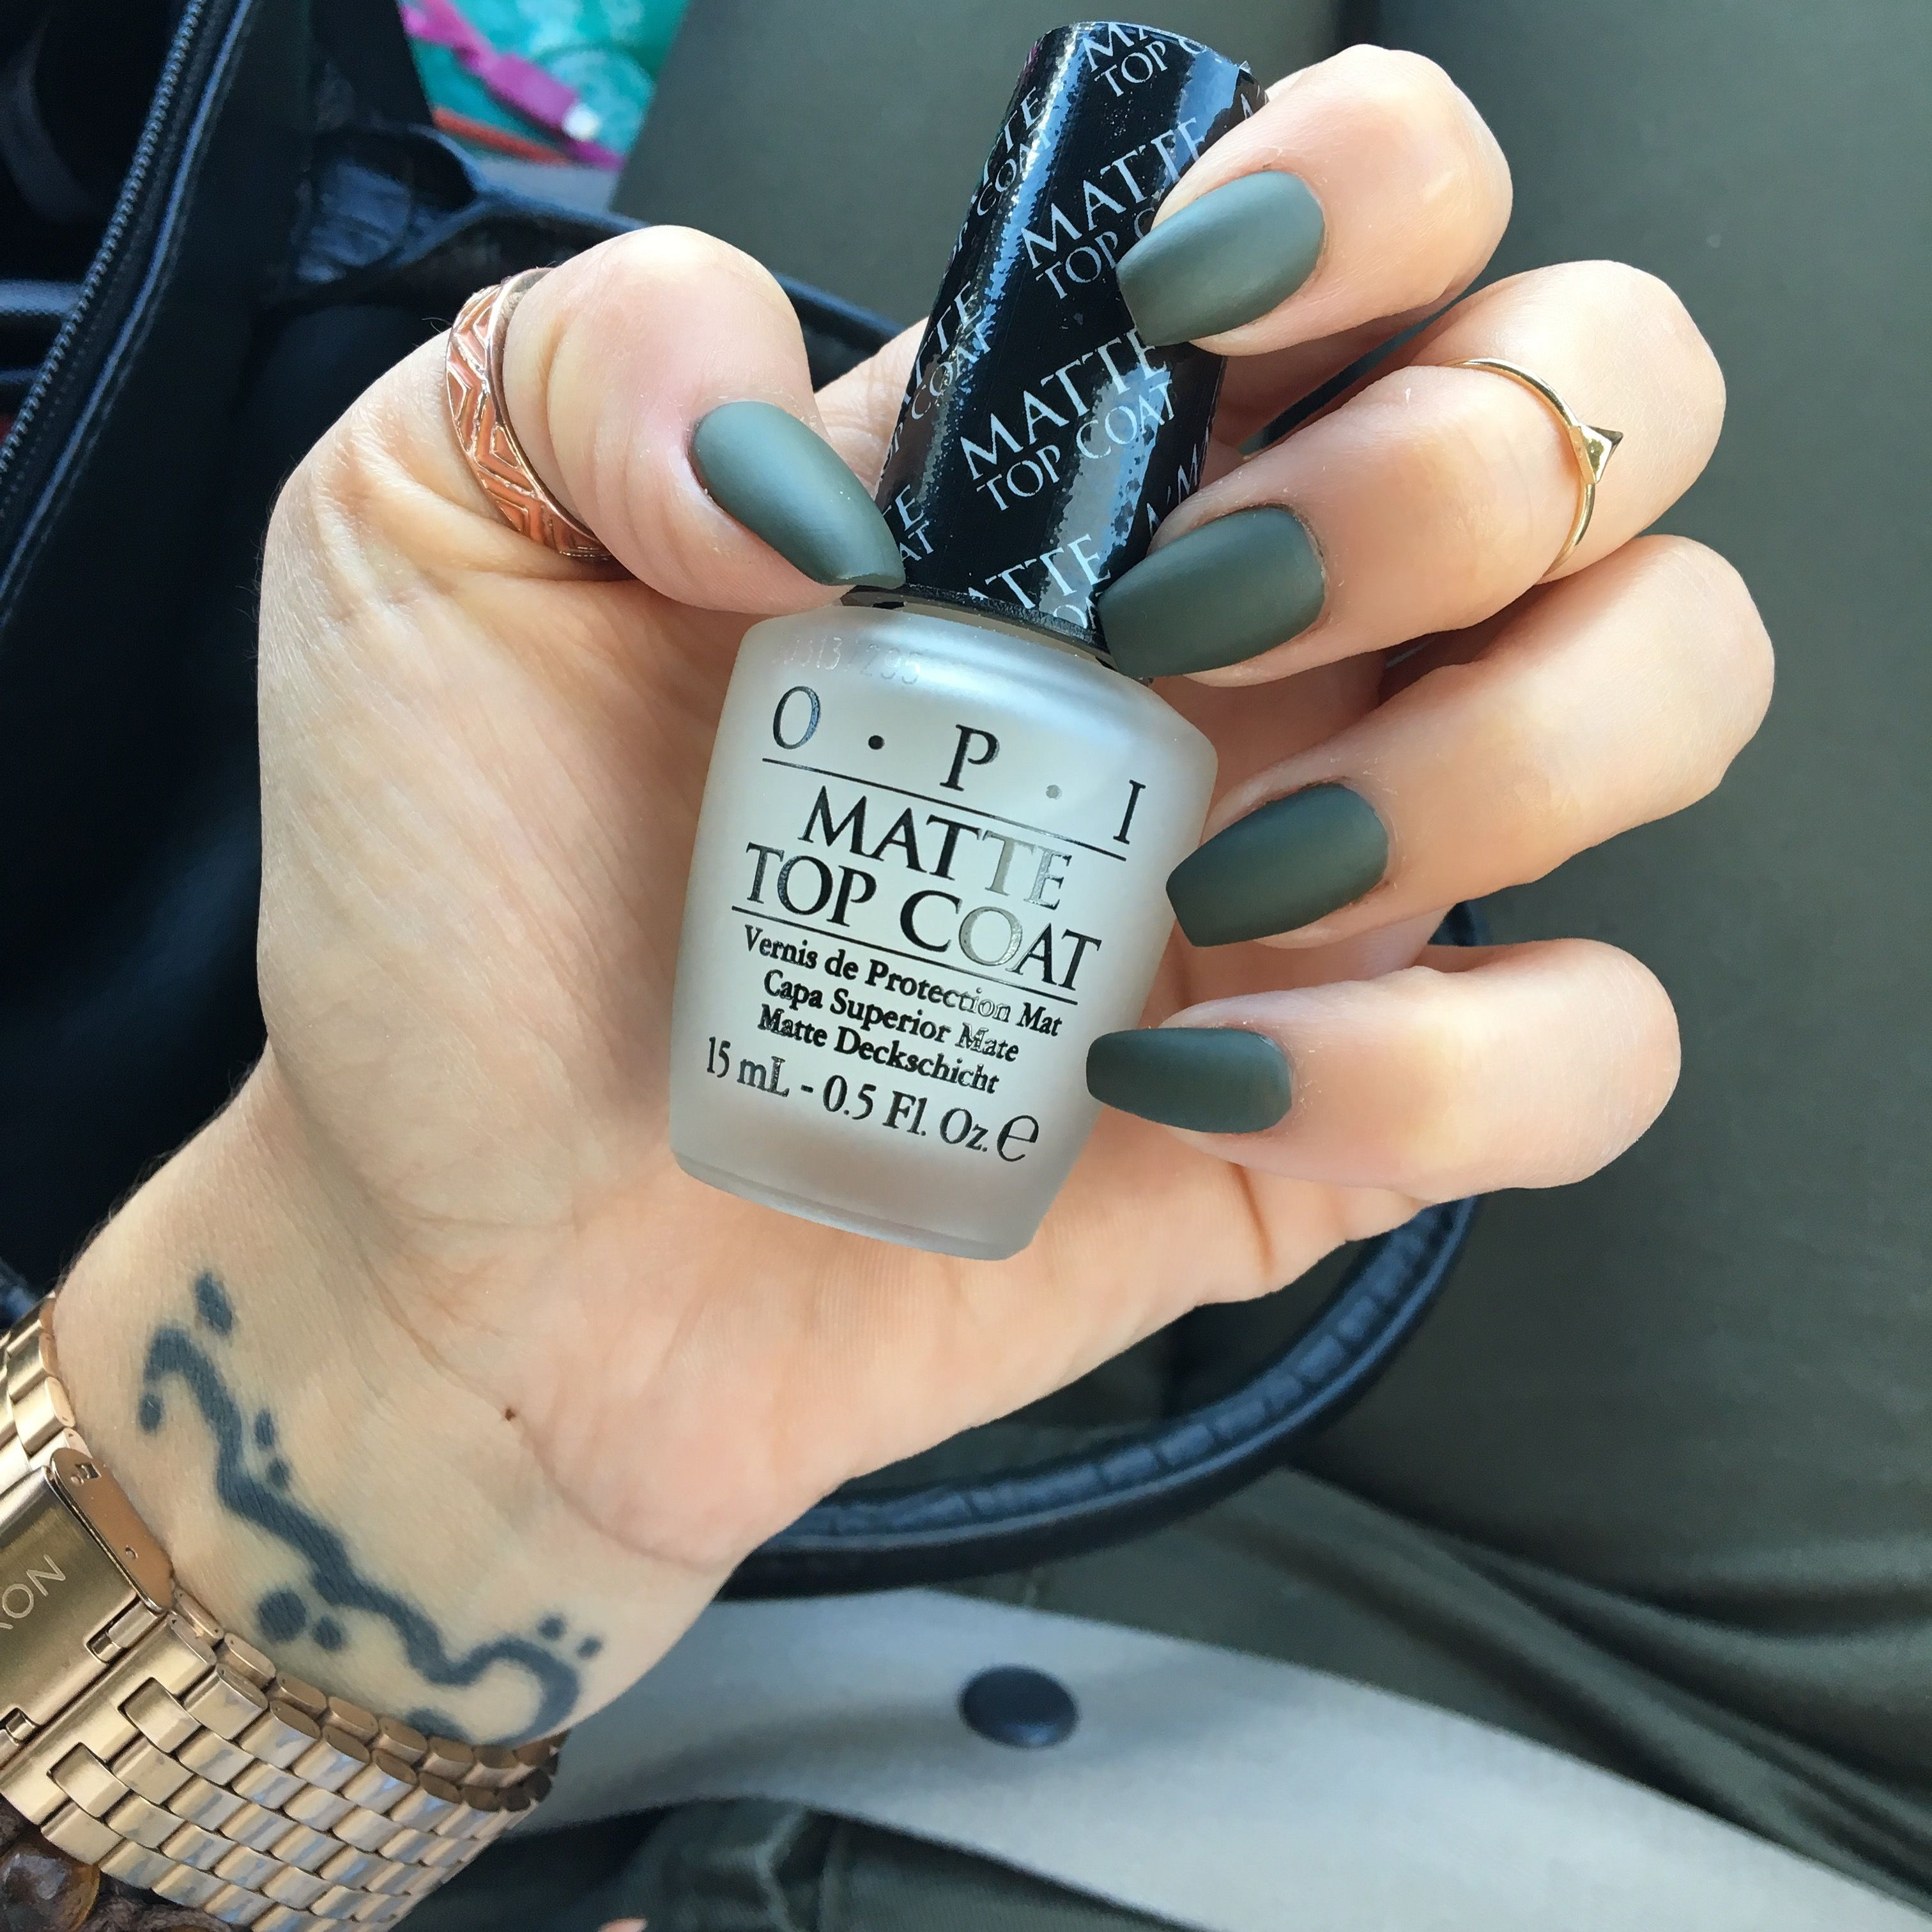 OPI Suzi the First Lady of Nails with OPI Matte Top Coat